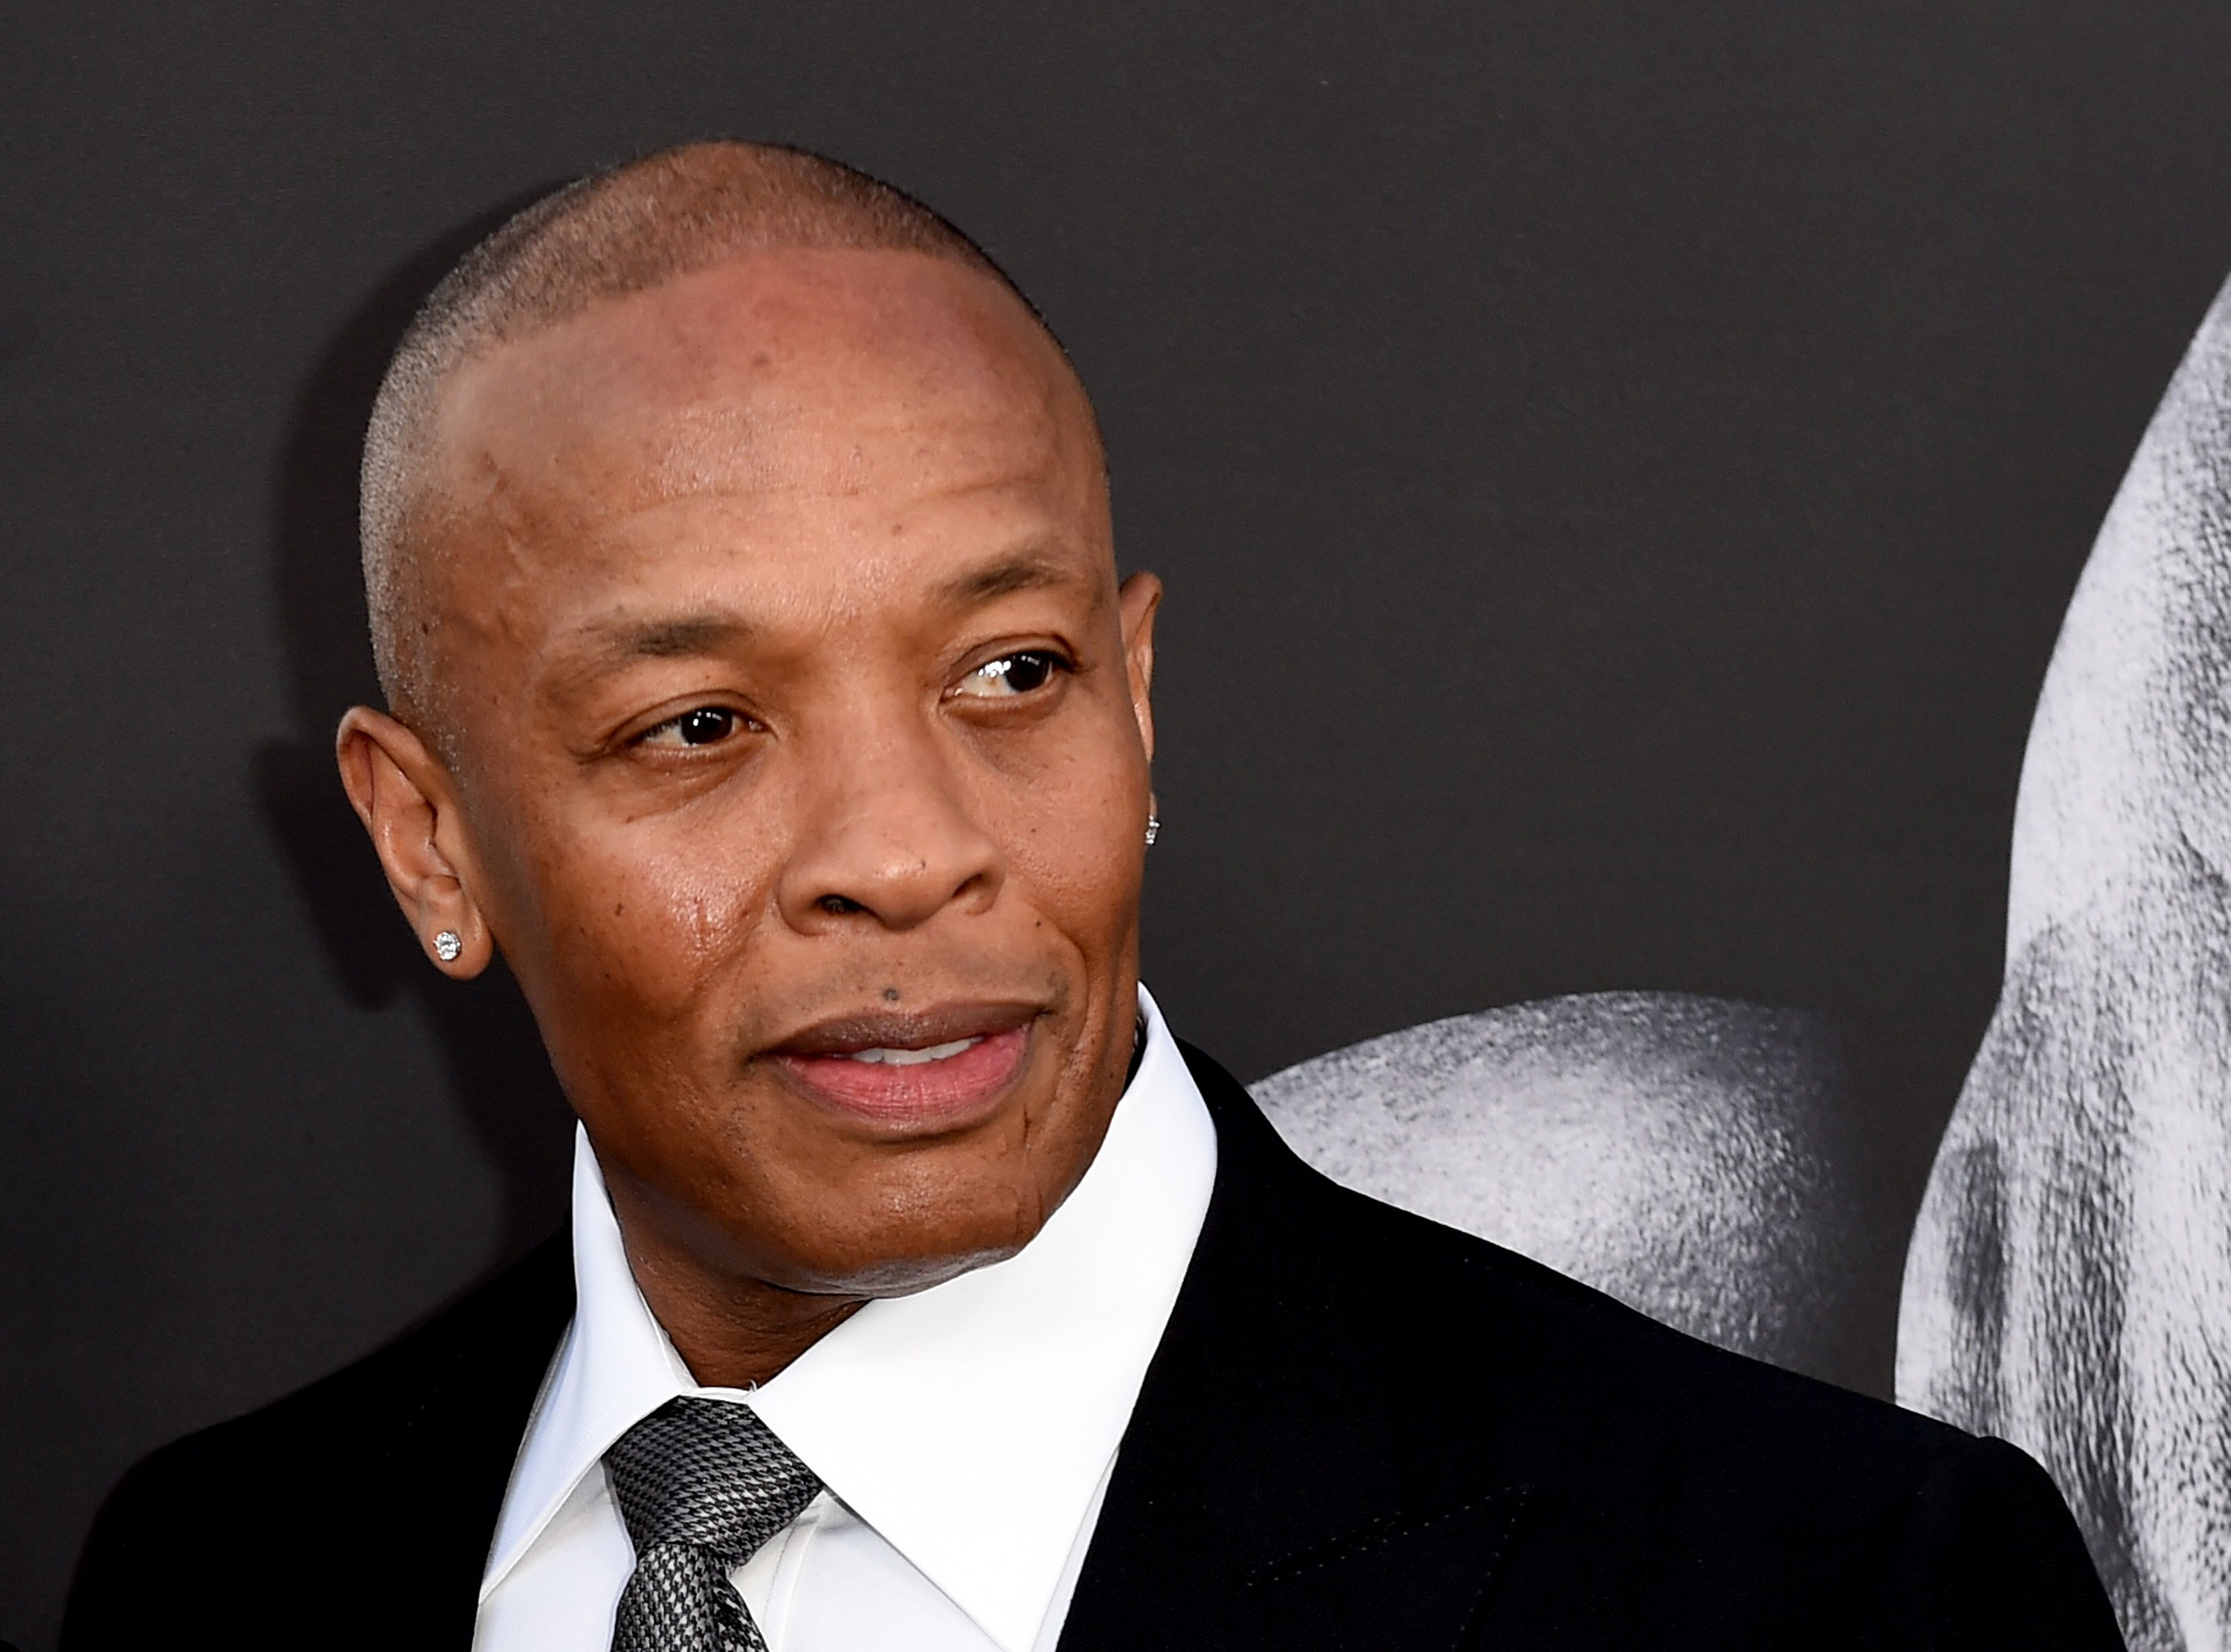 """Dr. Dre attends the premiere of """"The Defiant Ones"""" at Paramount Theatre on June 22, 2017  Photo: Getty Images"""